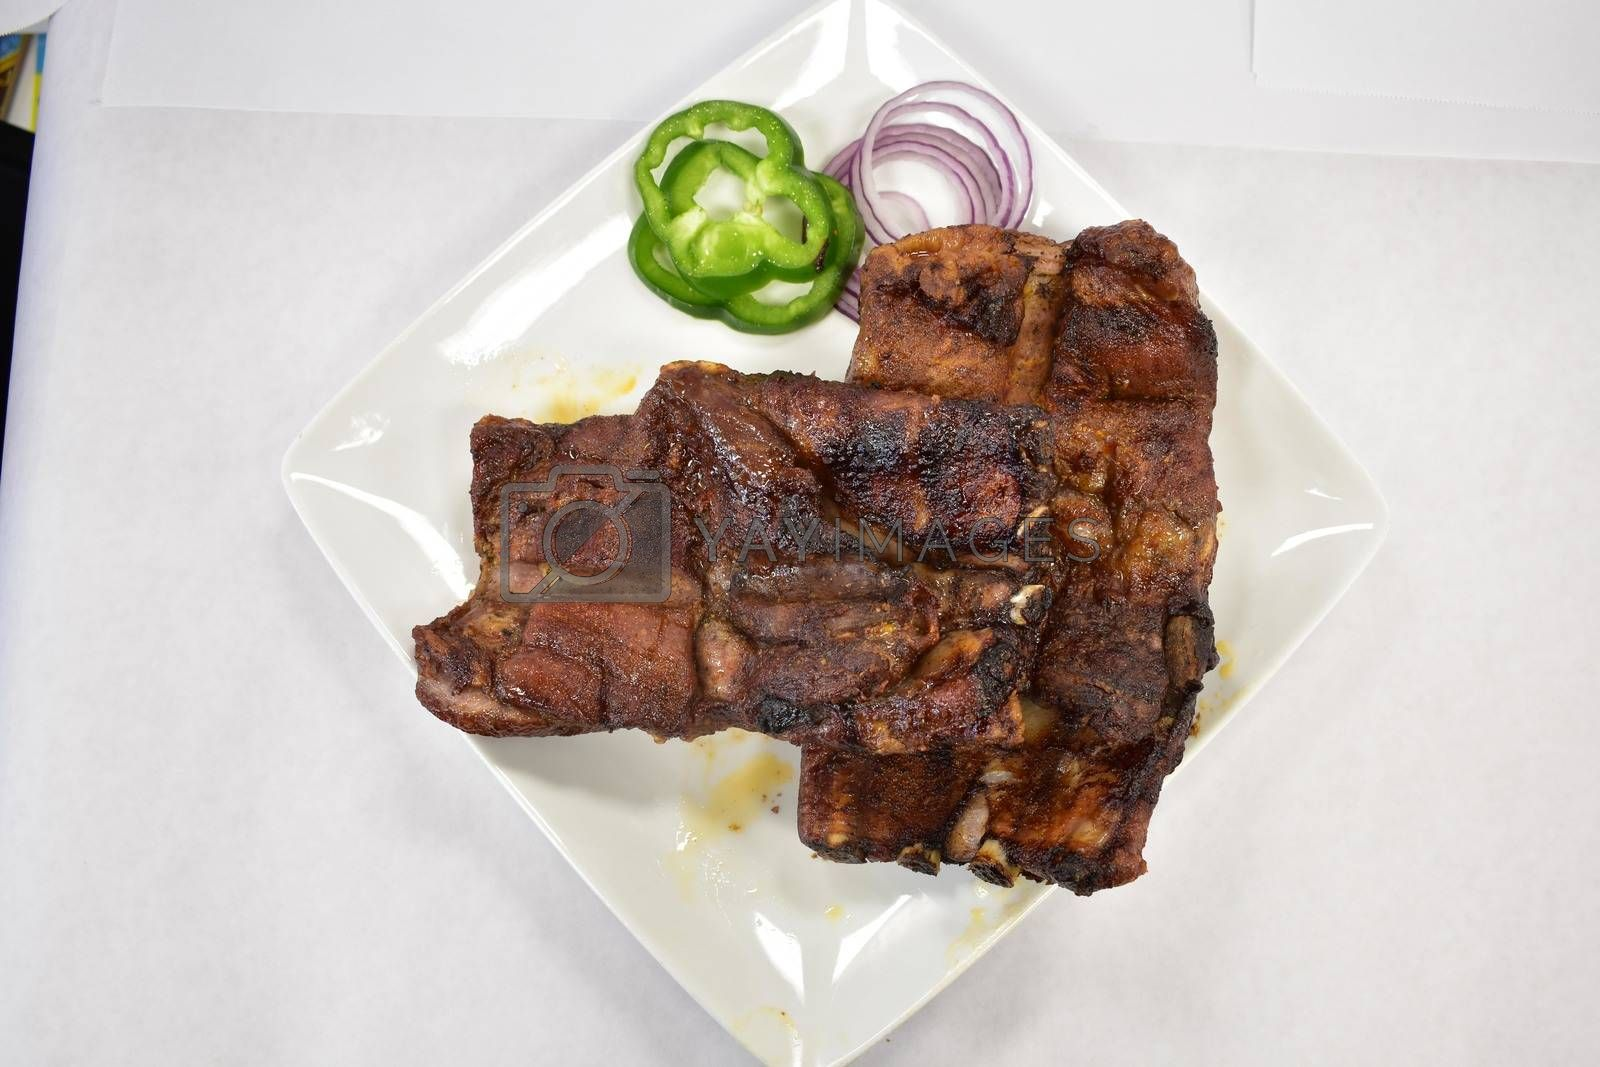 A Well-Done Rack of Ribs Plated on a White Background